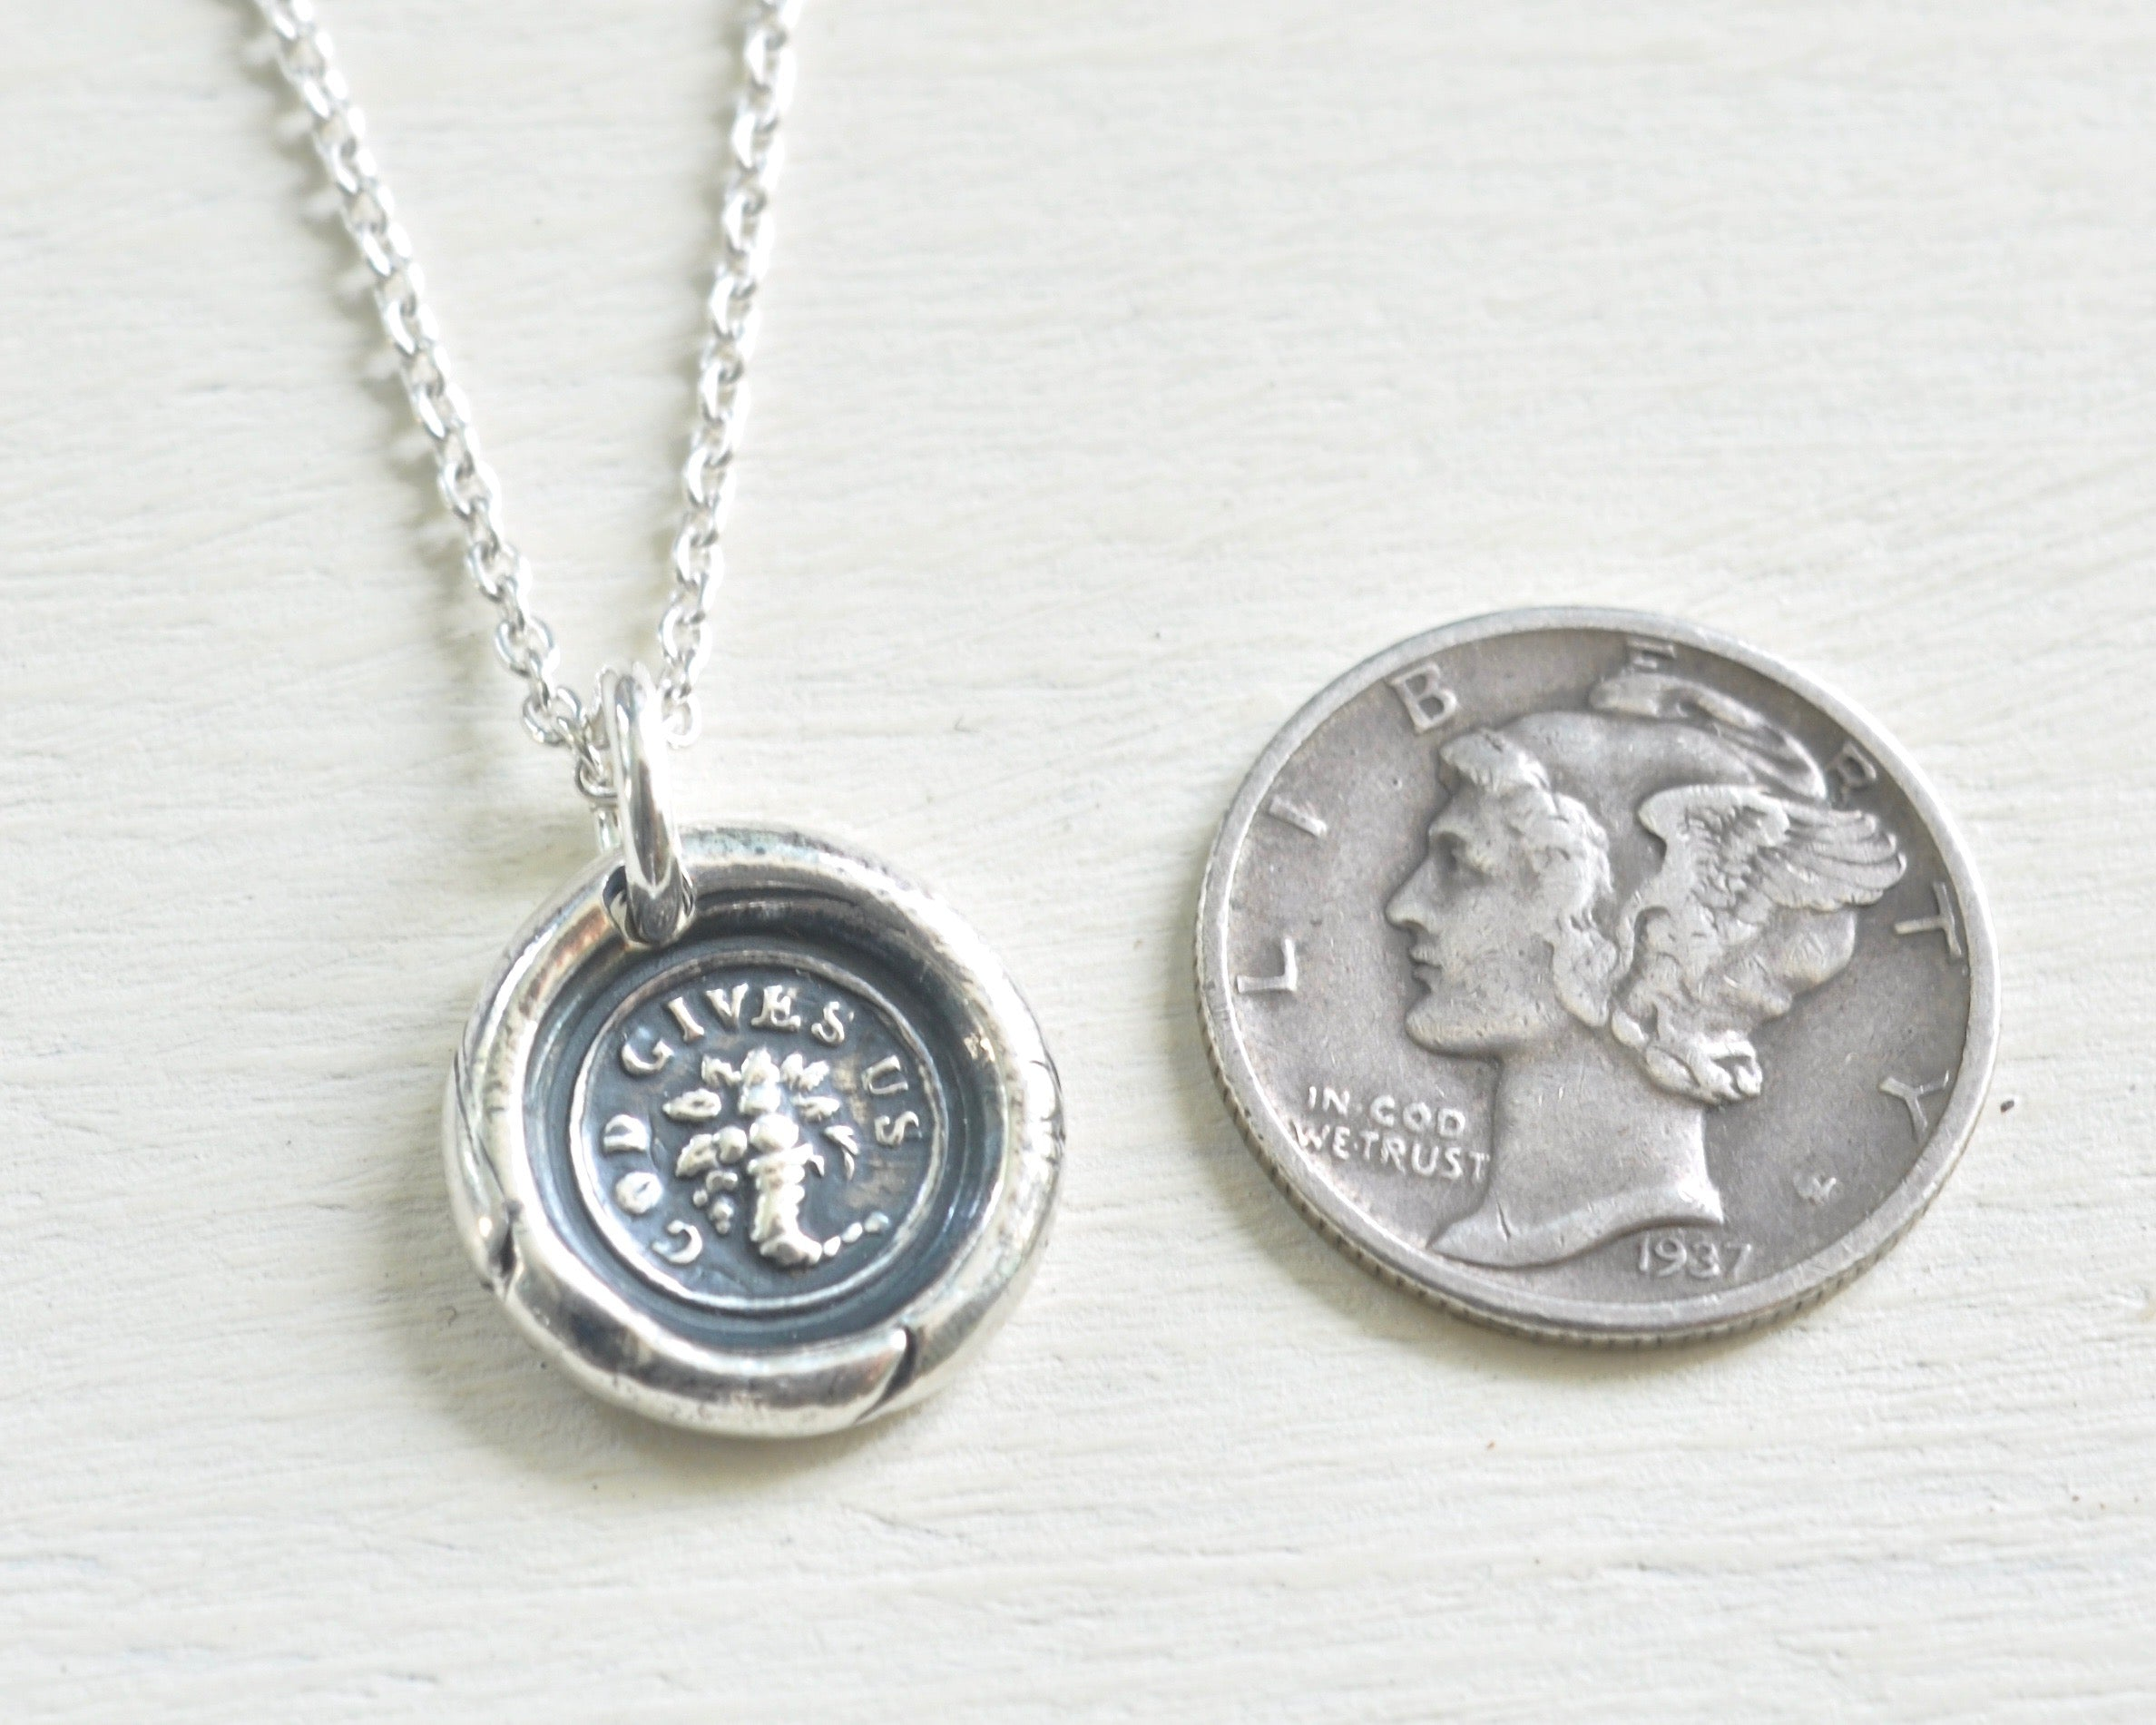 Cornucopia wax seal necklace god gives us horn of plenty cornucopia wax seal necklace god gives us horn of plenty mozeypictures Images